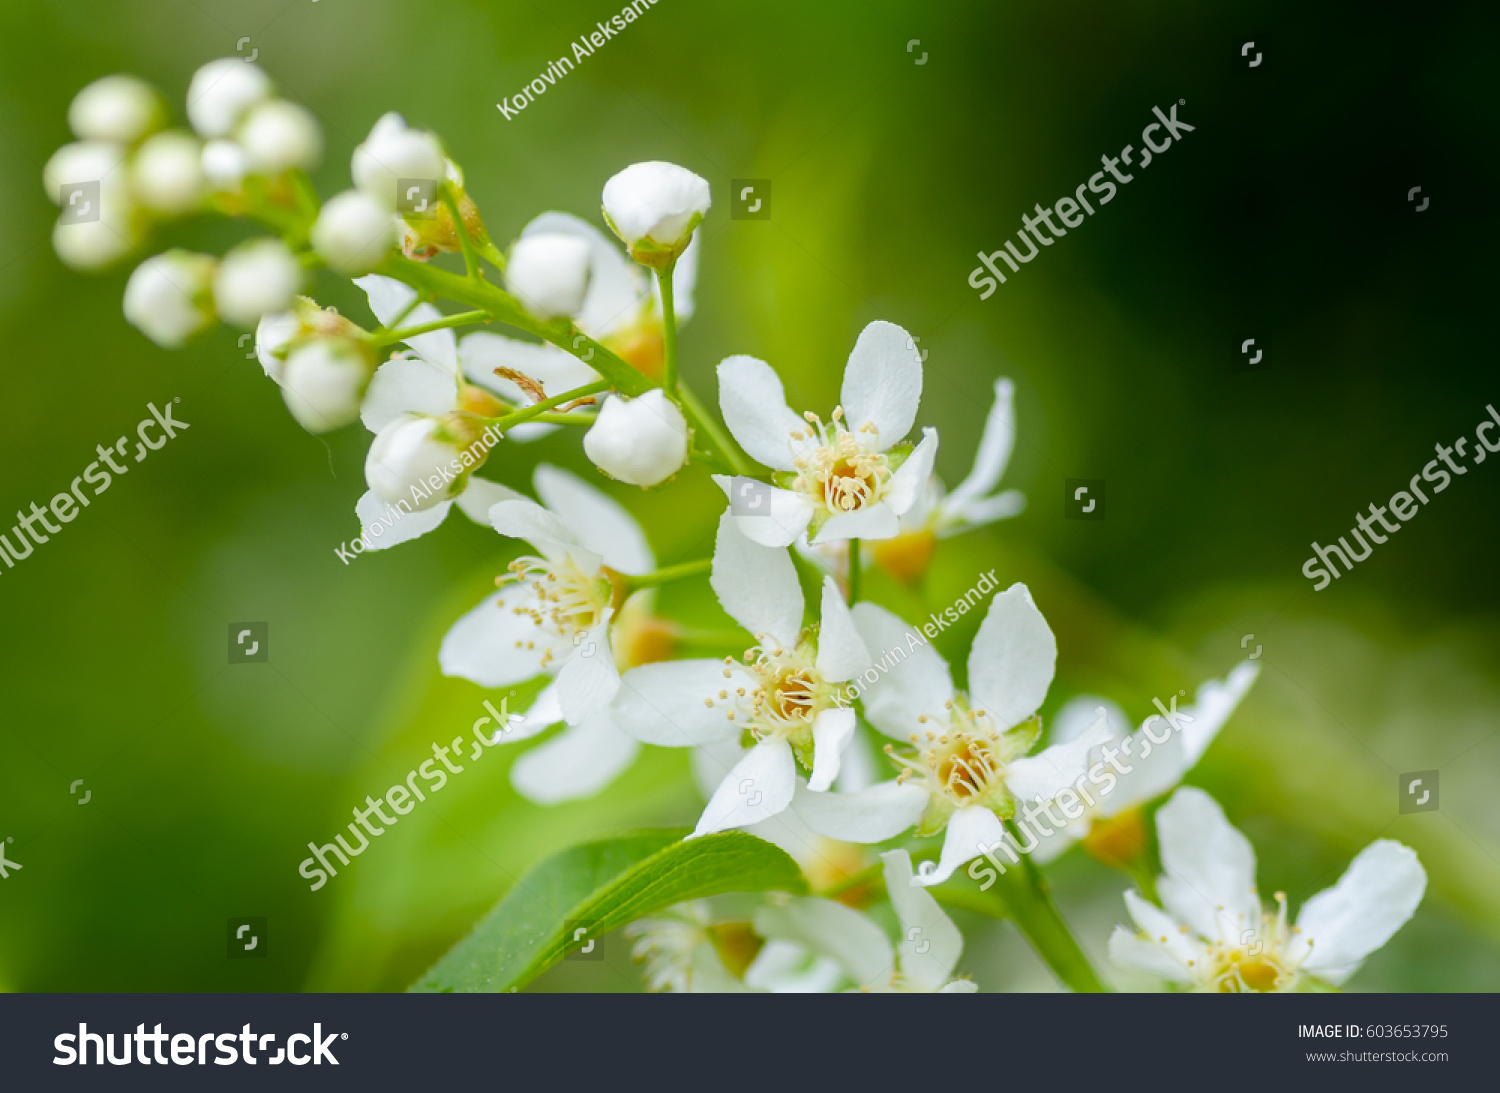 White Fragrant Flowers Of The Bird Cherry Tree Blossomed In The